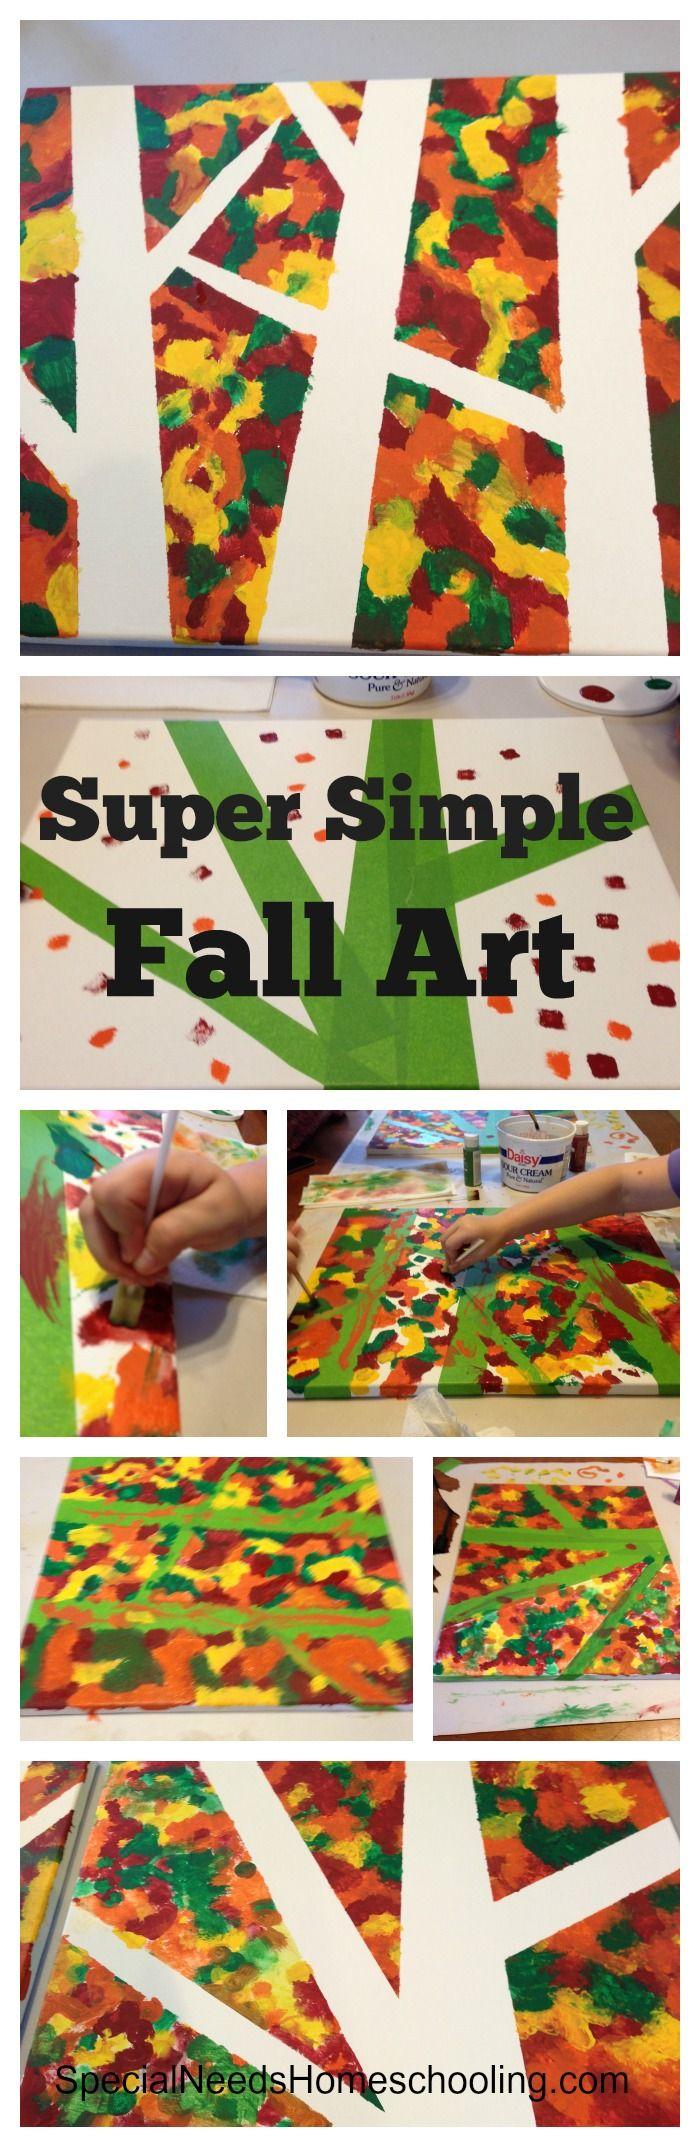 Super simple fall art-Fall Art Worthy of the Livingroom Wall! #homeschooling